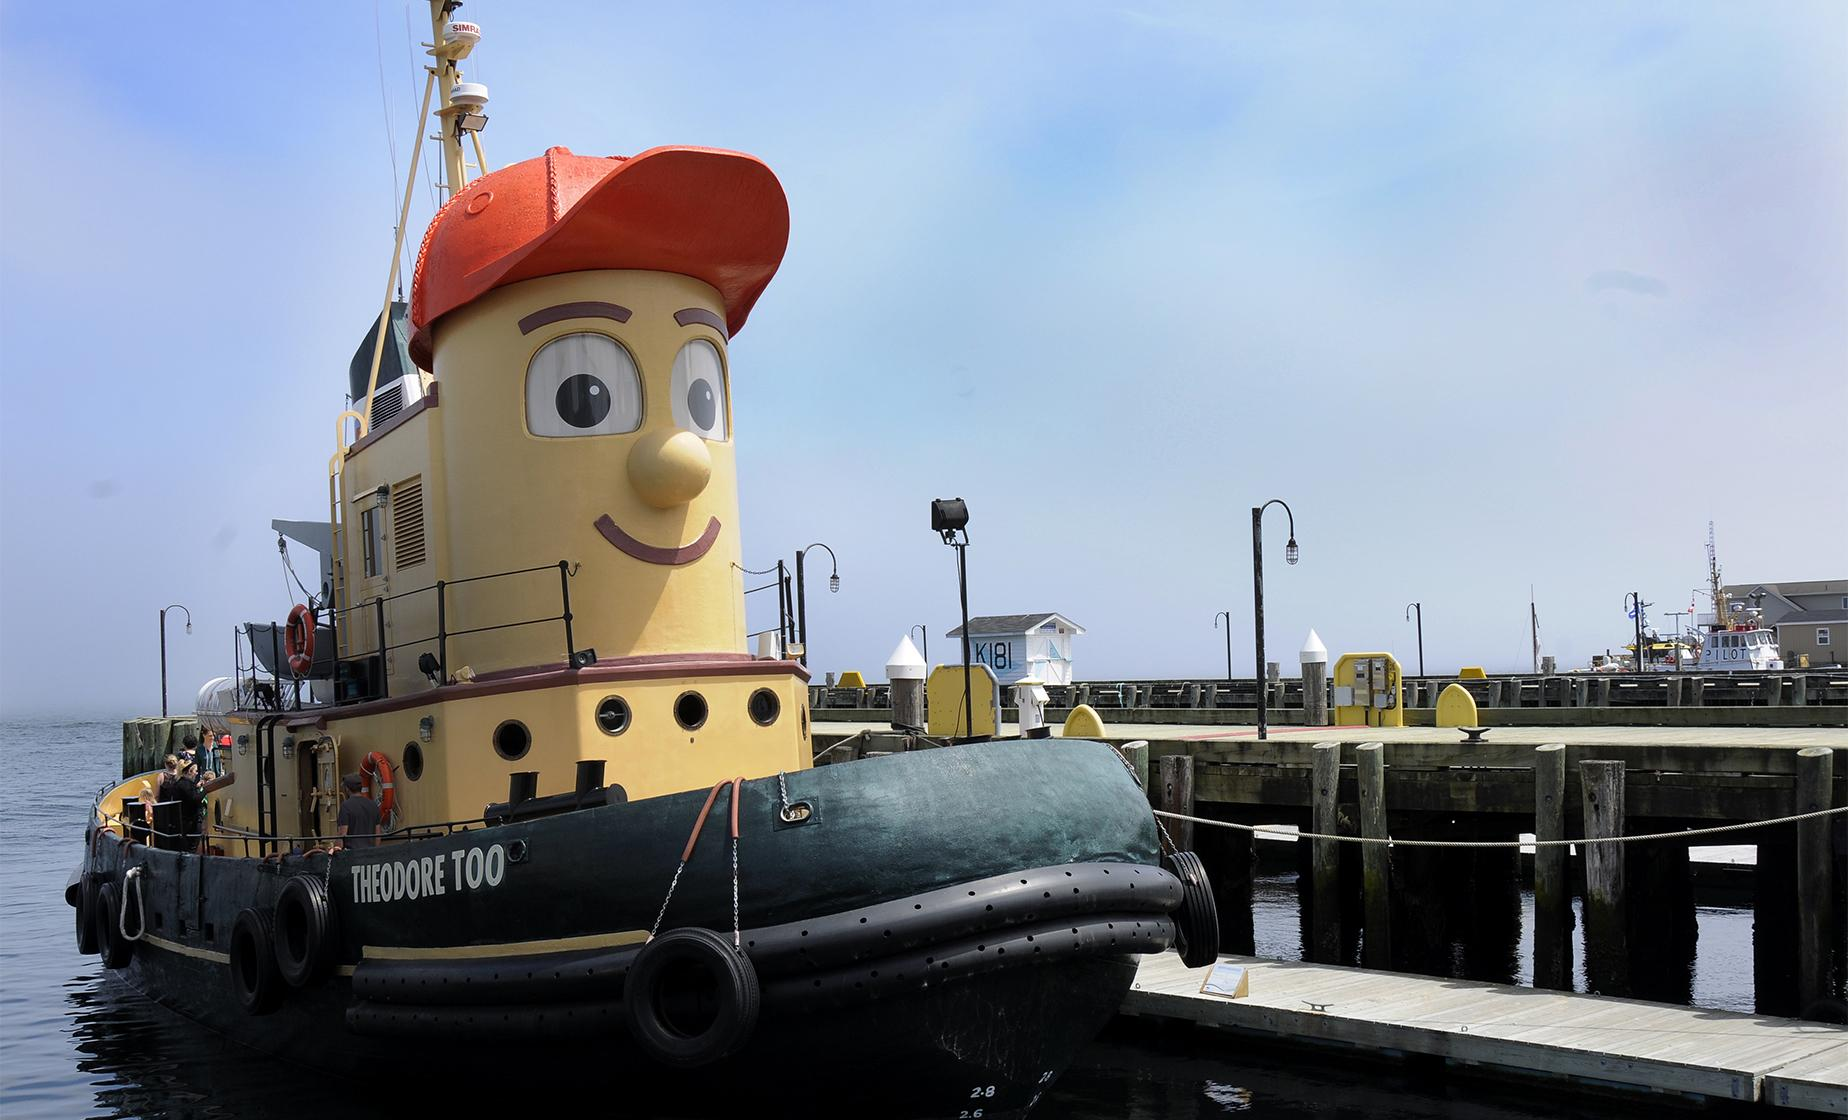 The Theodore Tugboat Experience